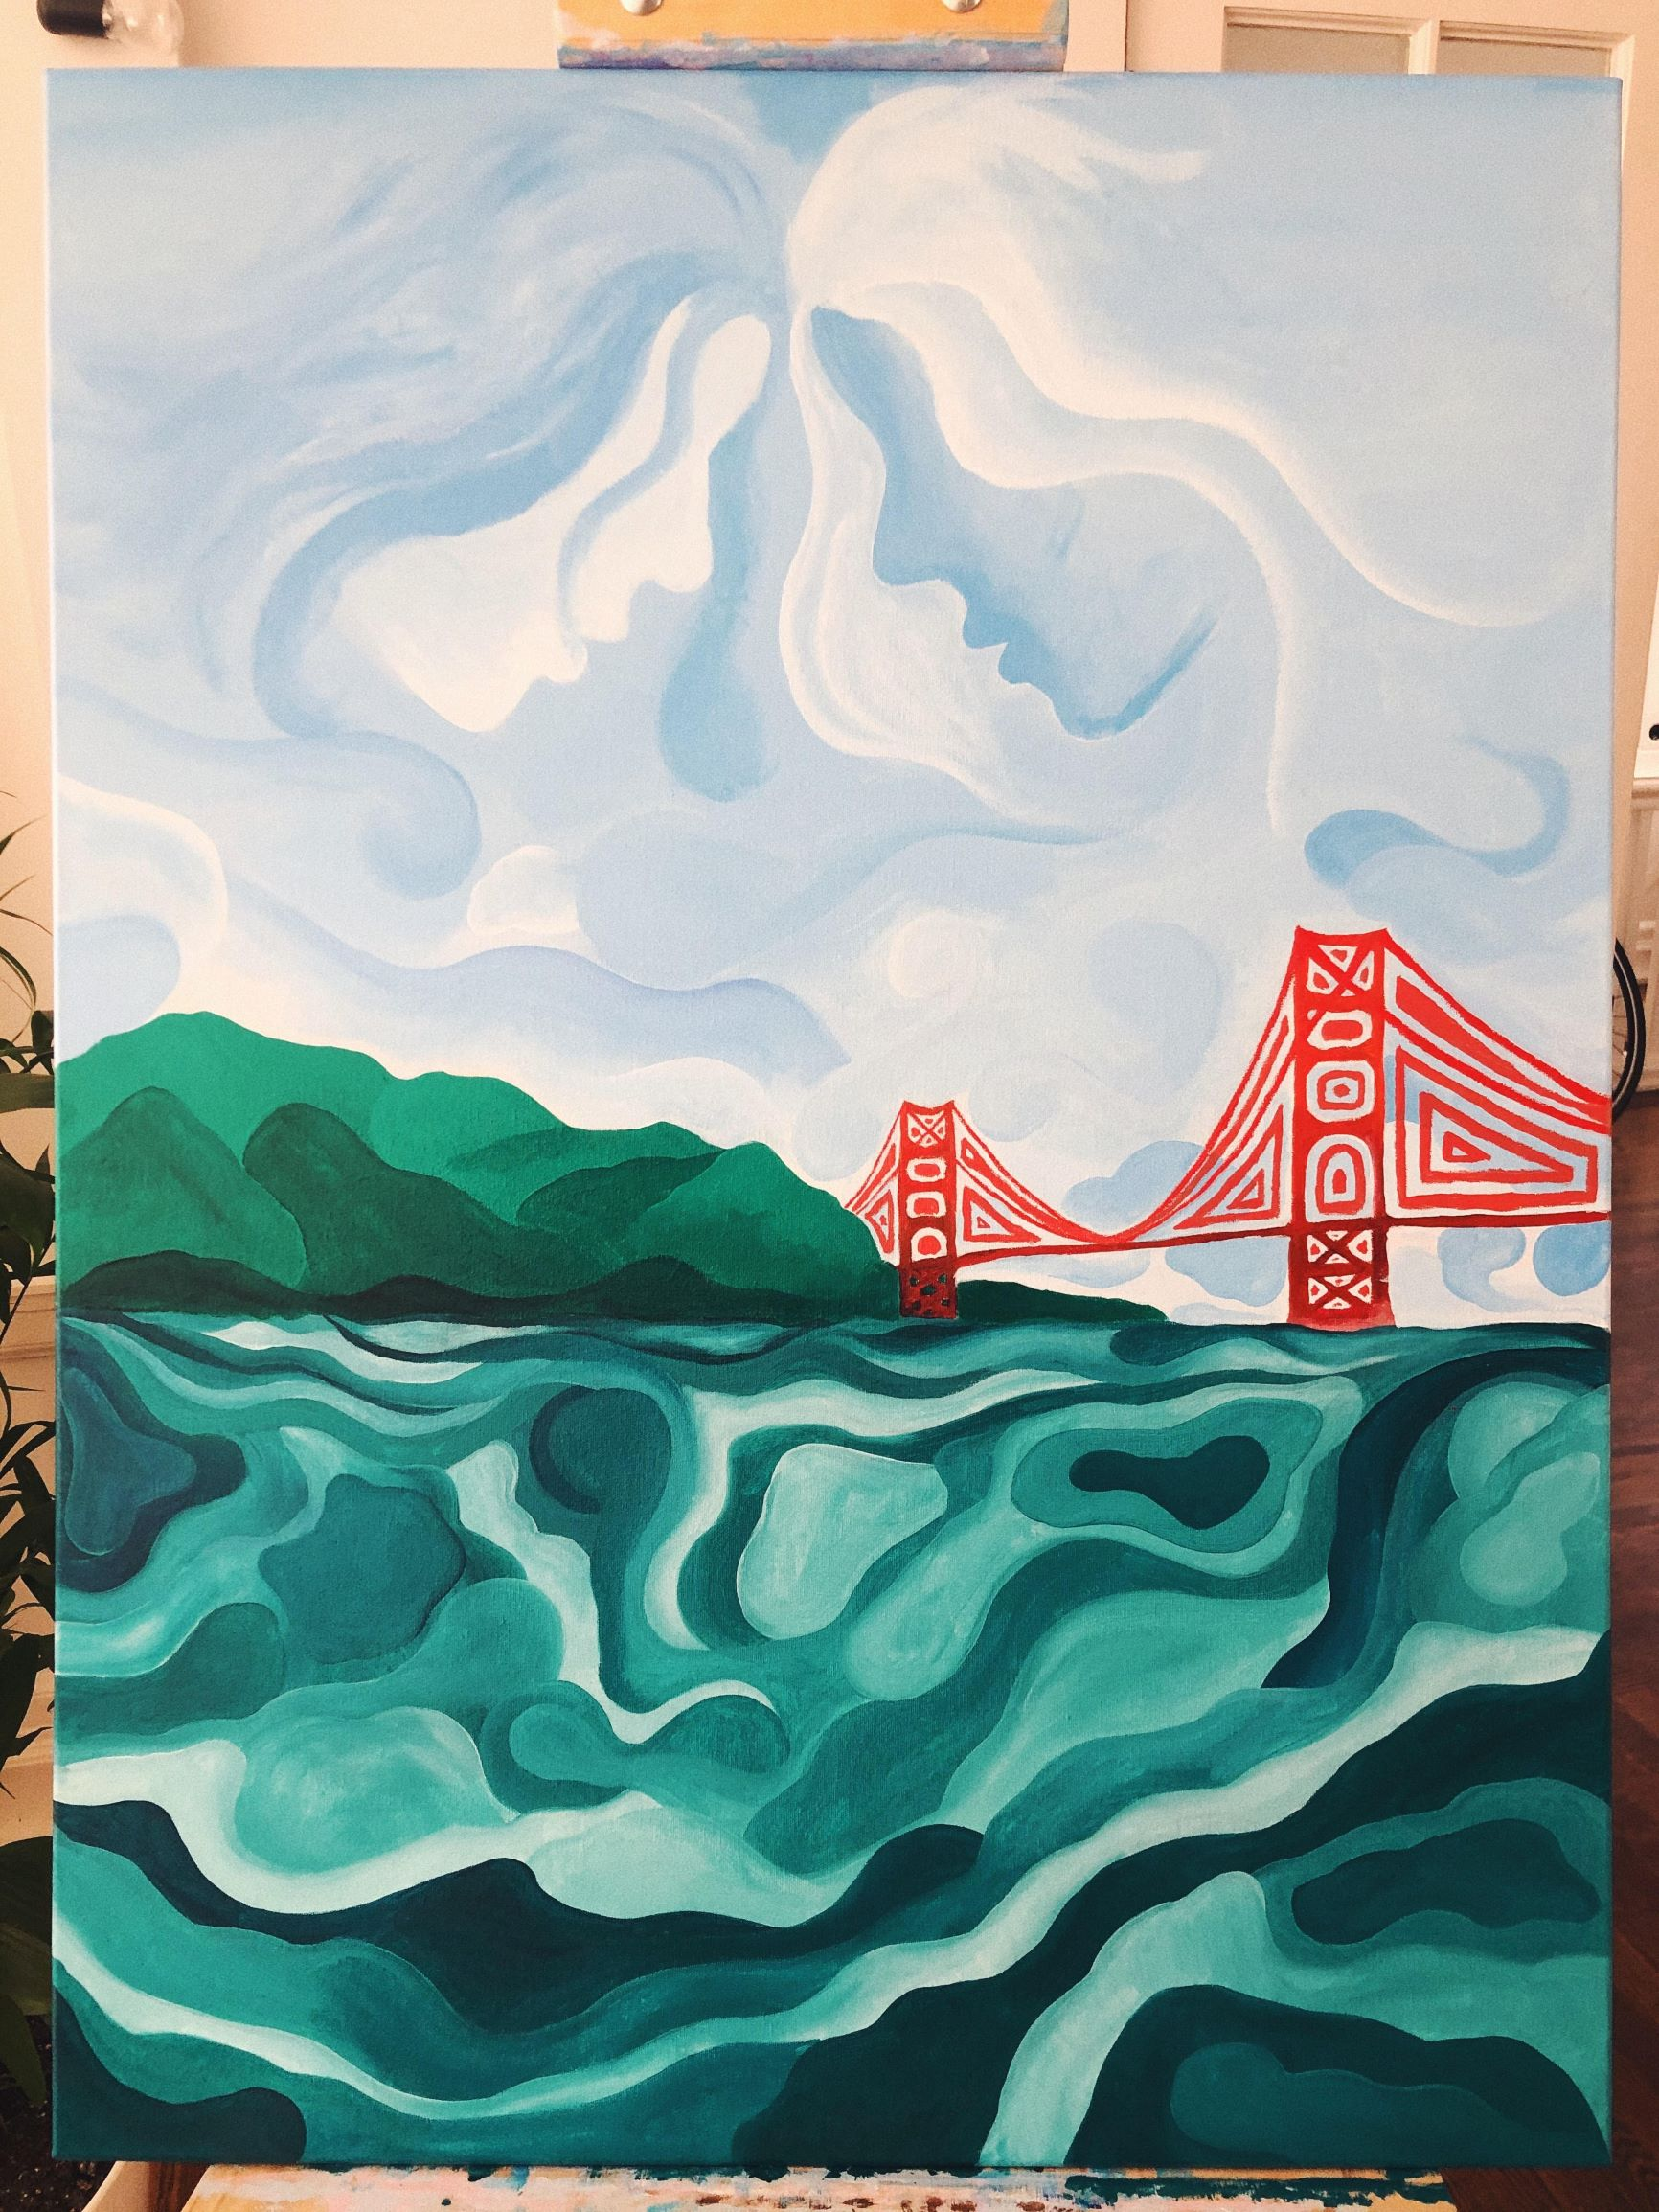 Painting of Golden Gate Bridge with female faces in the clouds